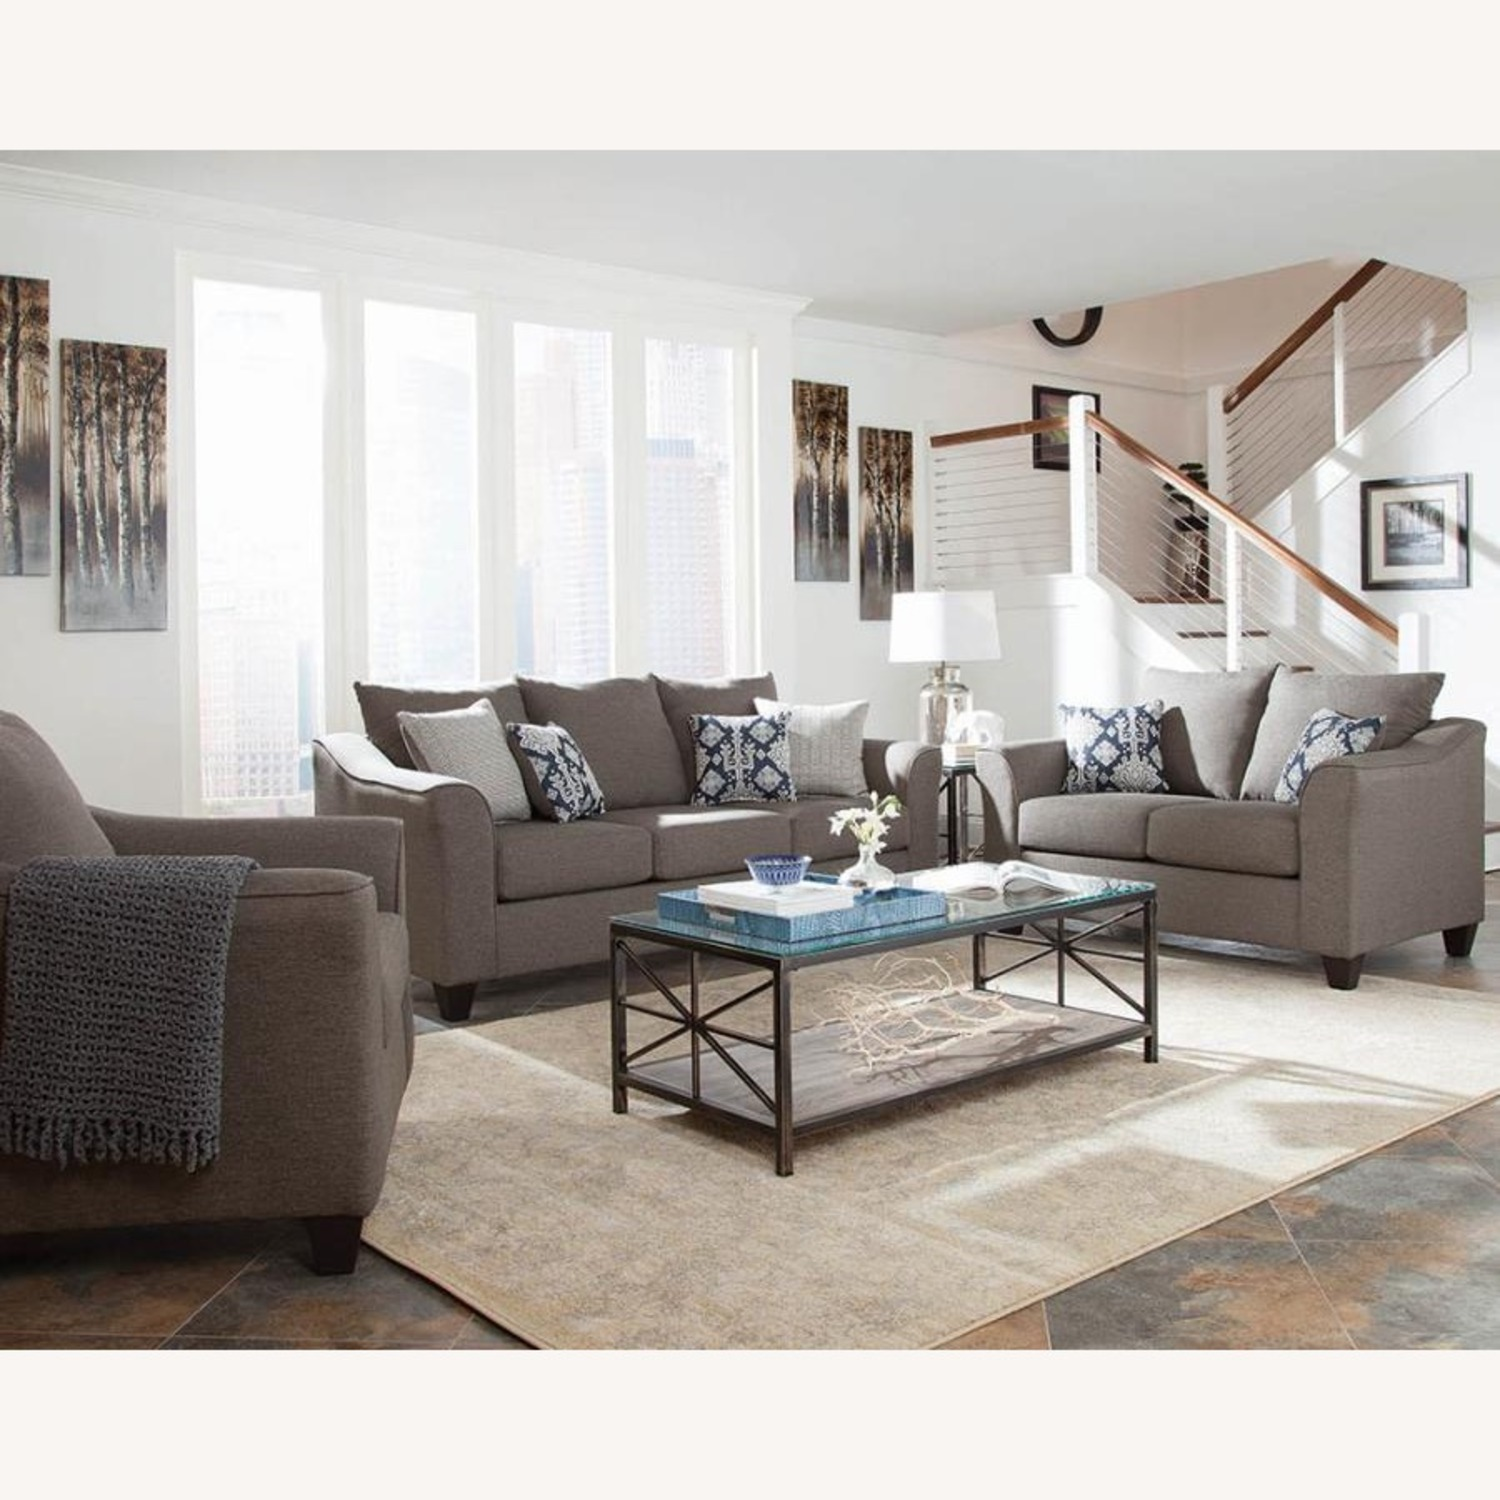 Flared Arms Loveseat In Neutral Grey - image-3